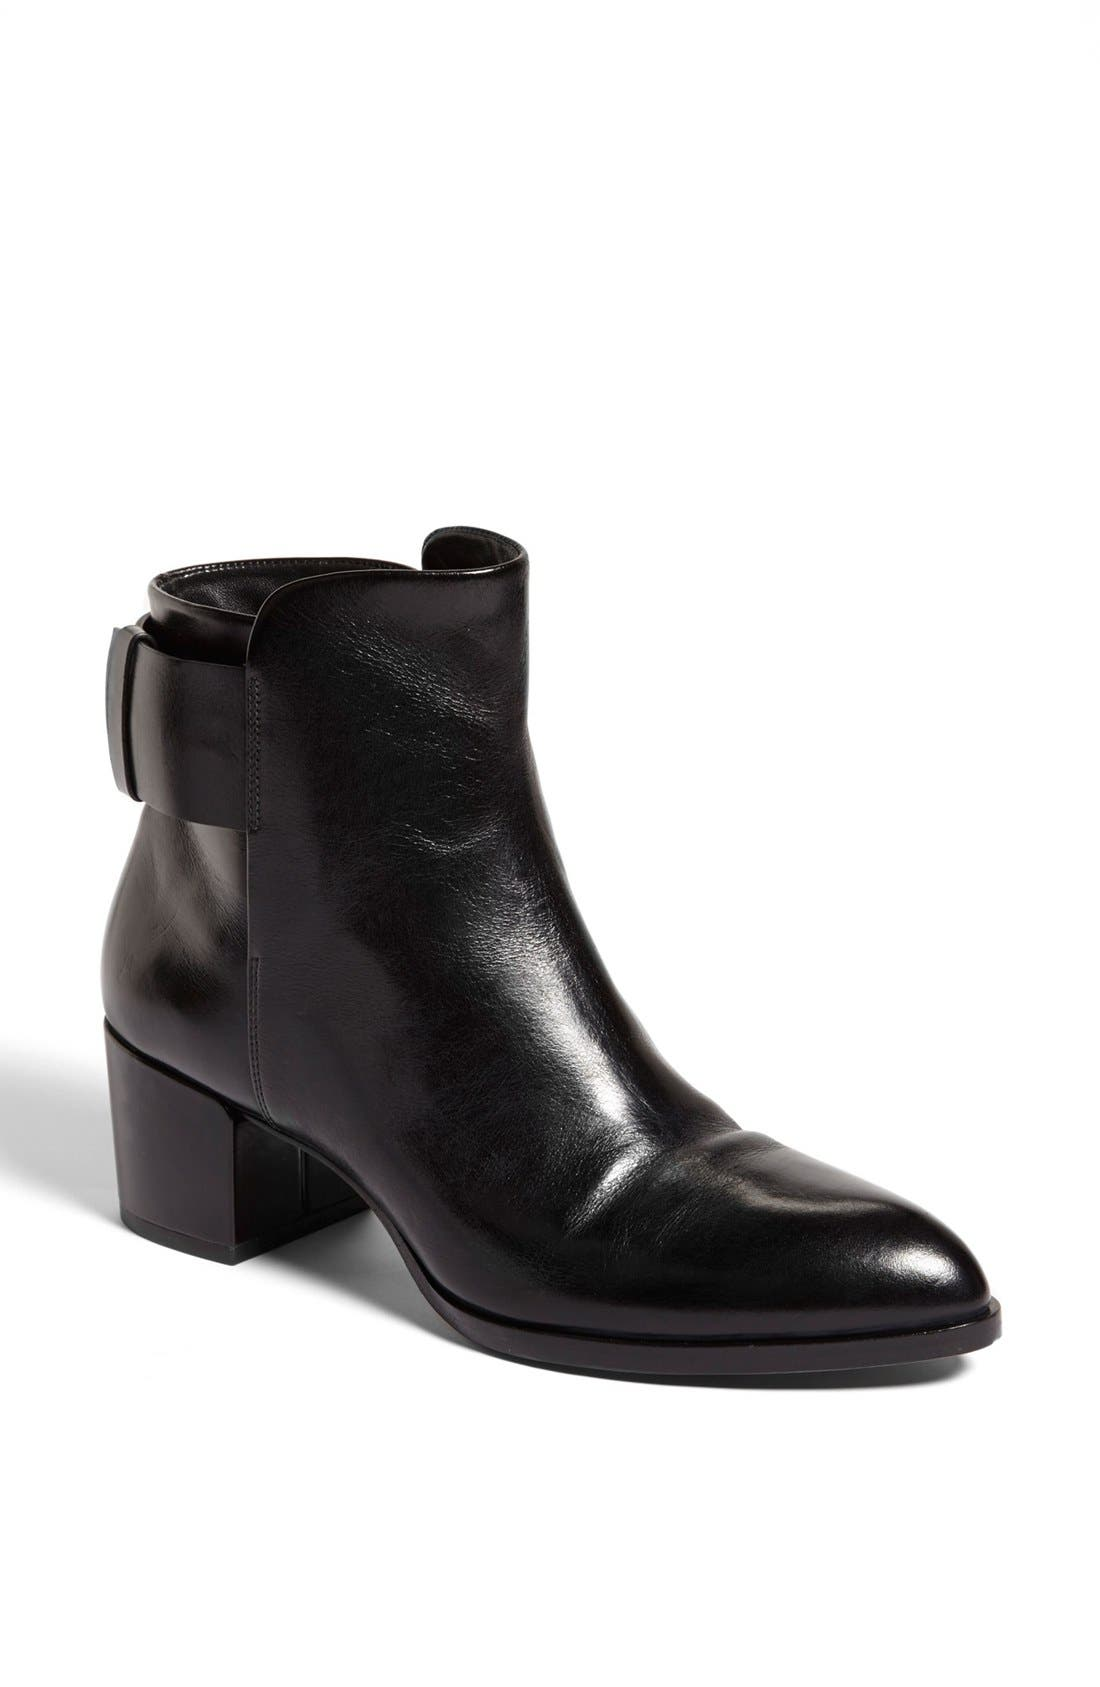 Alternate Image 1 Selected - Alexander Wang 'Anja' Calfskin Leather Ankle Boot